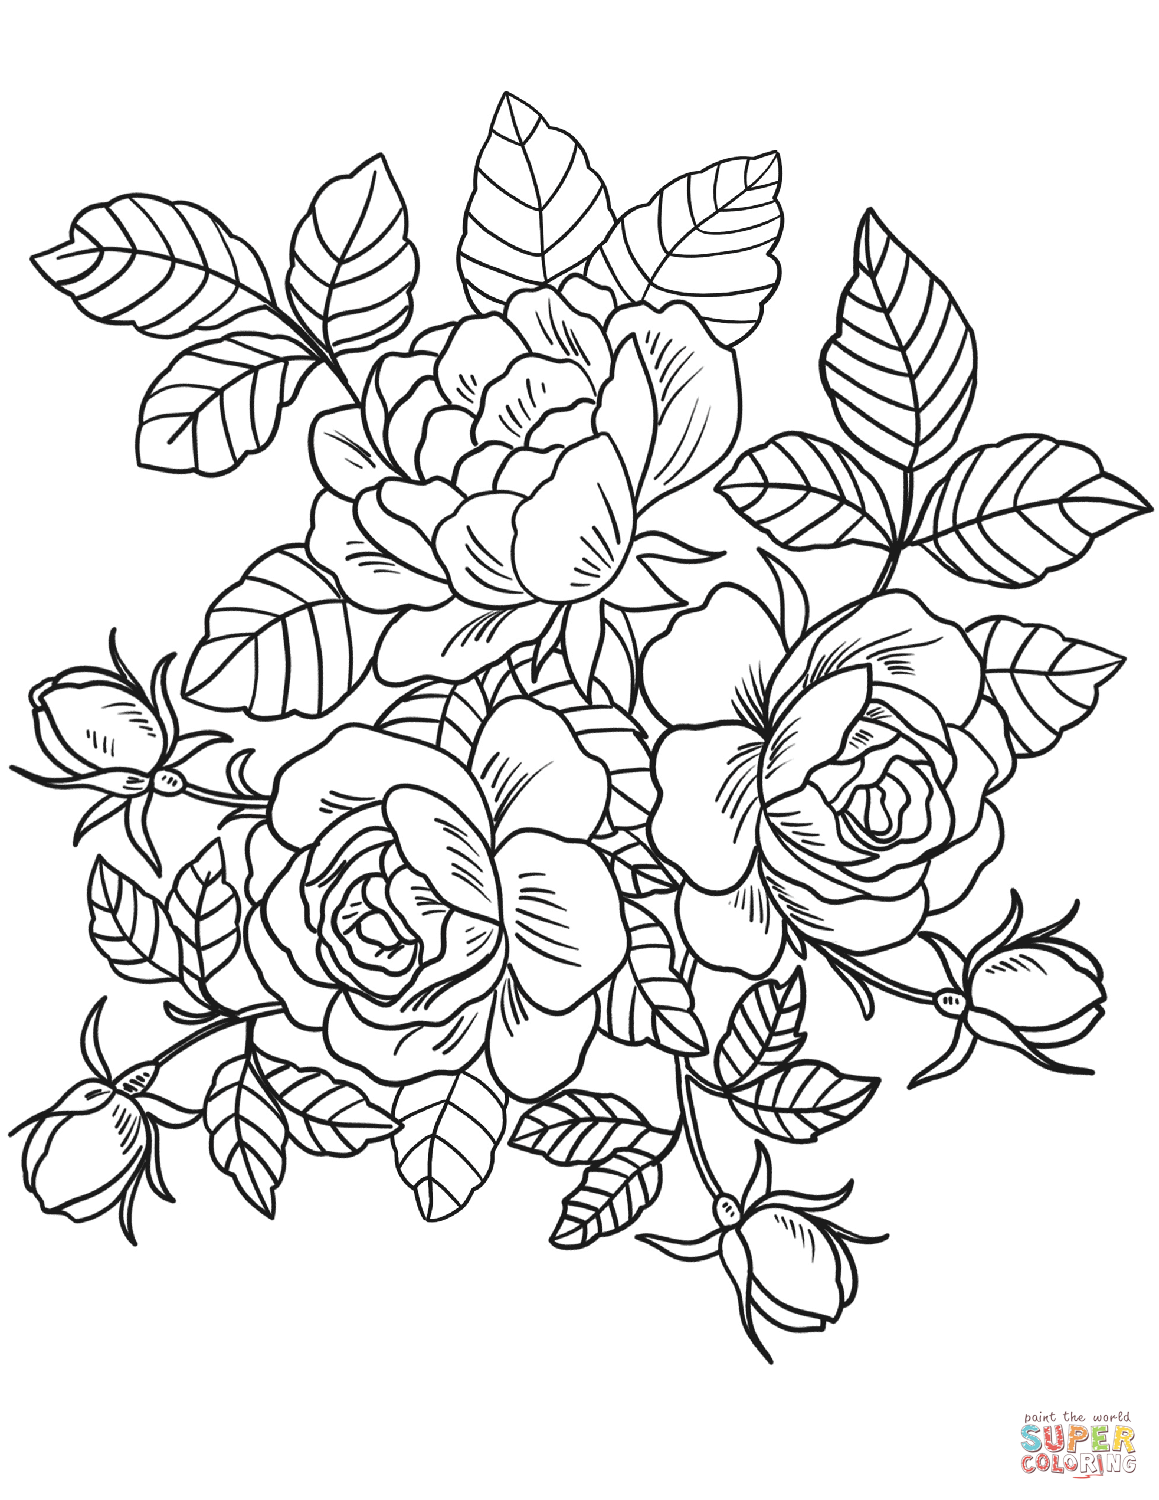 printable coloring pages for adults flowers flower coloring pages for adults best coloring pages for for flowers pages printable adults coloring